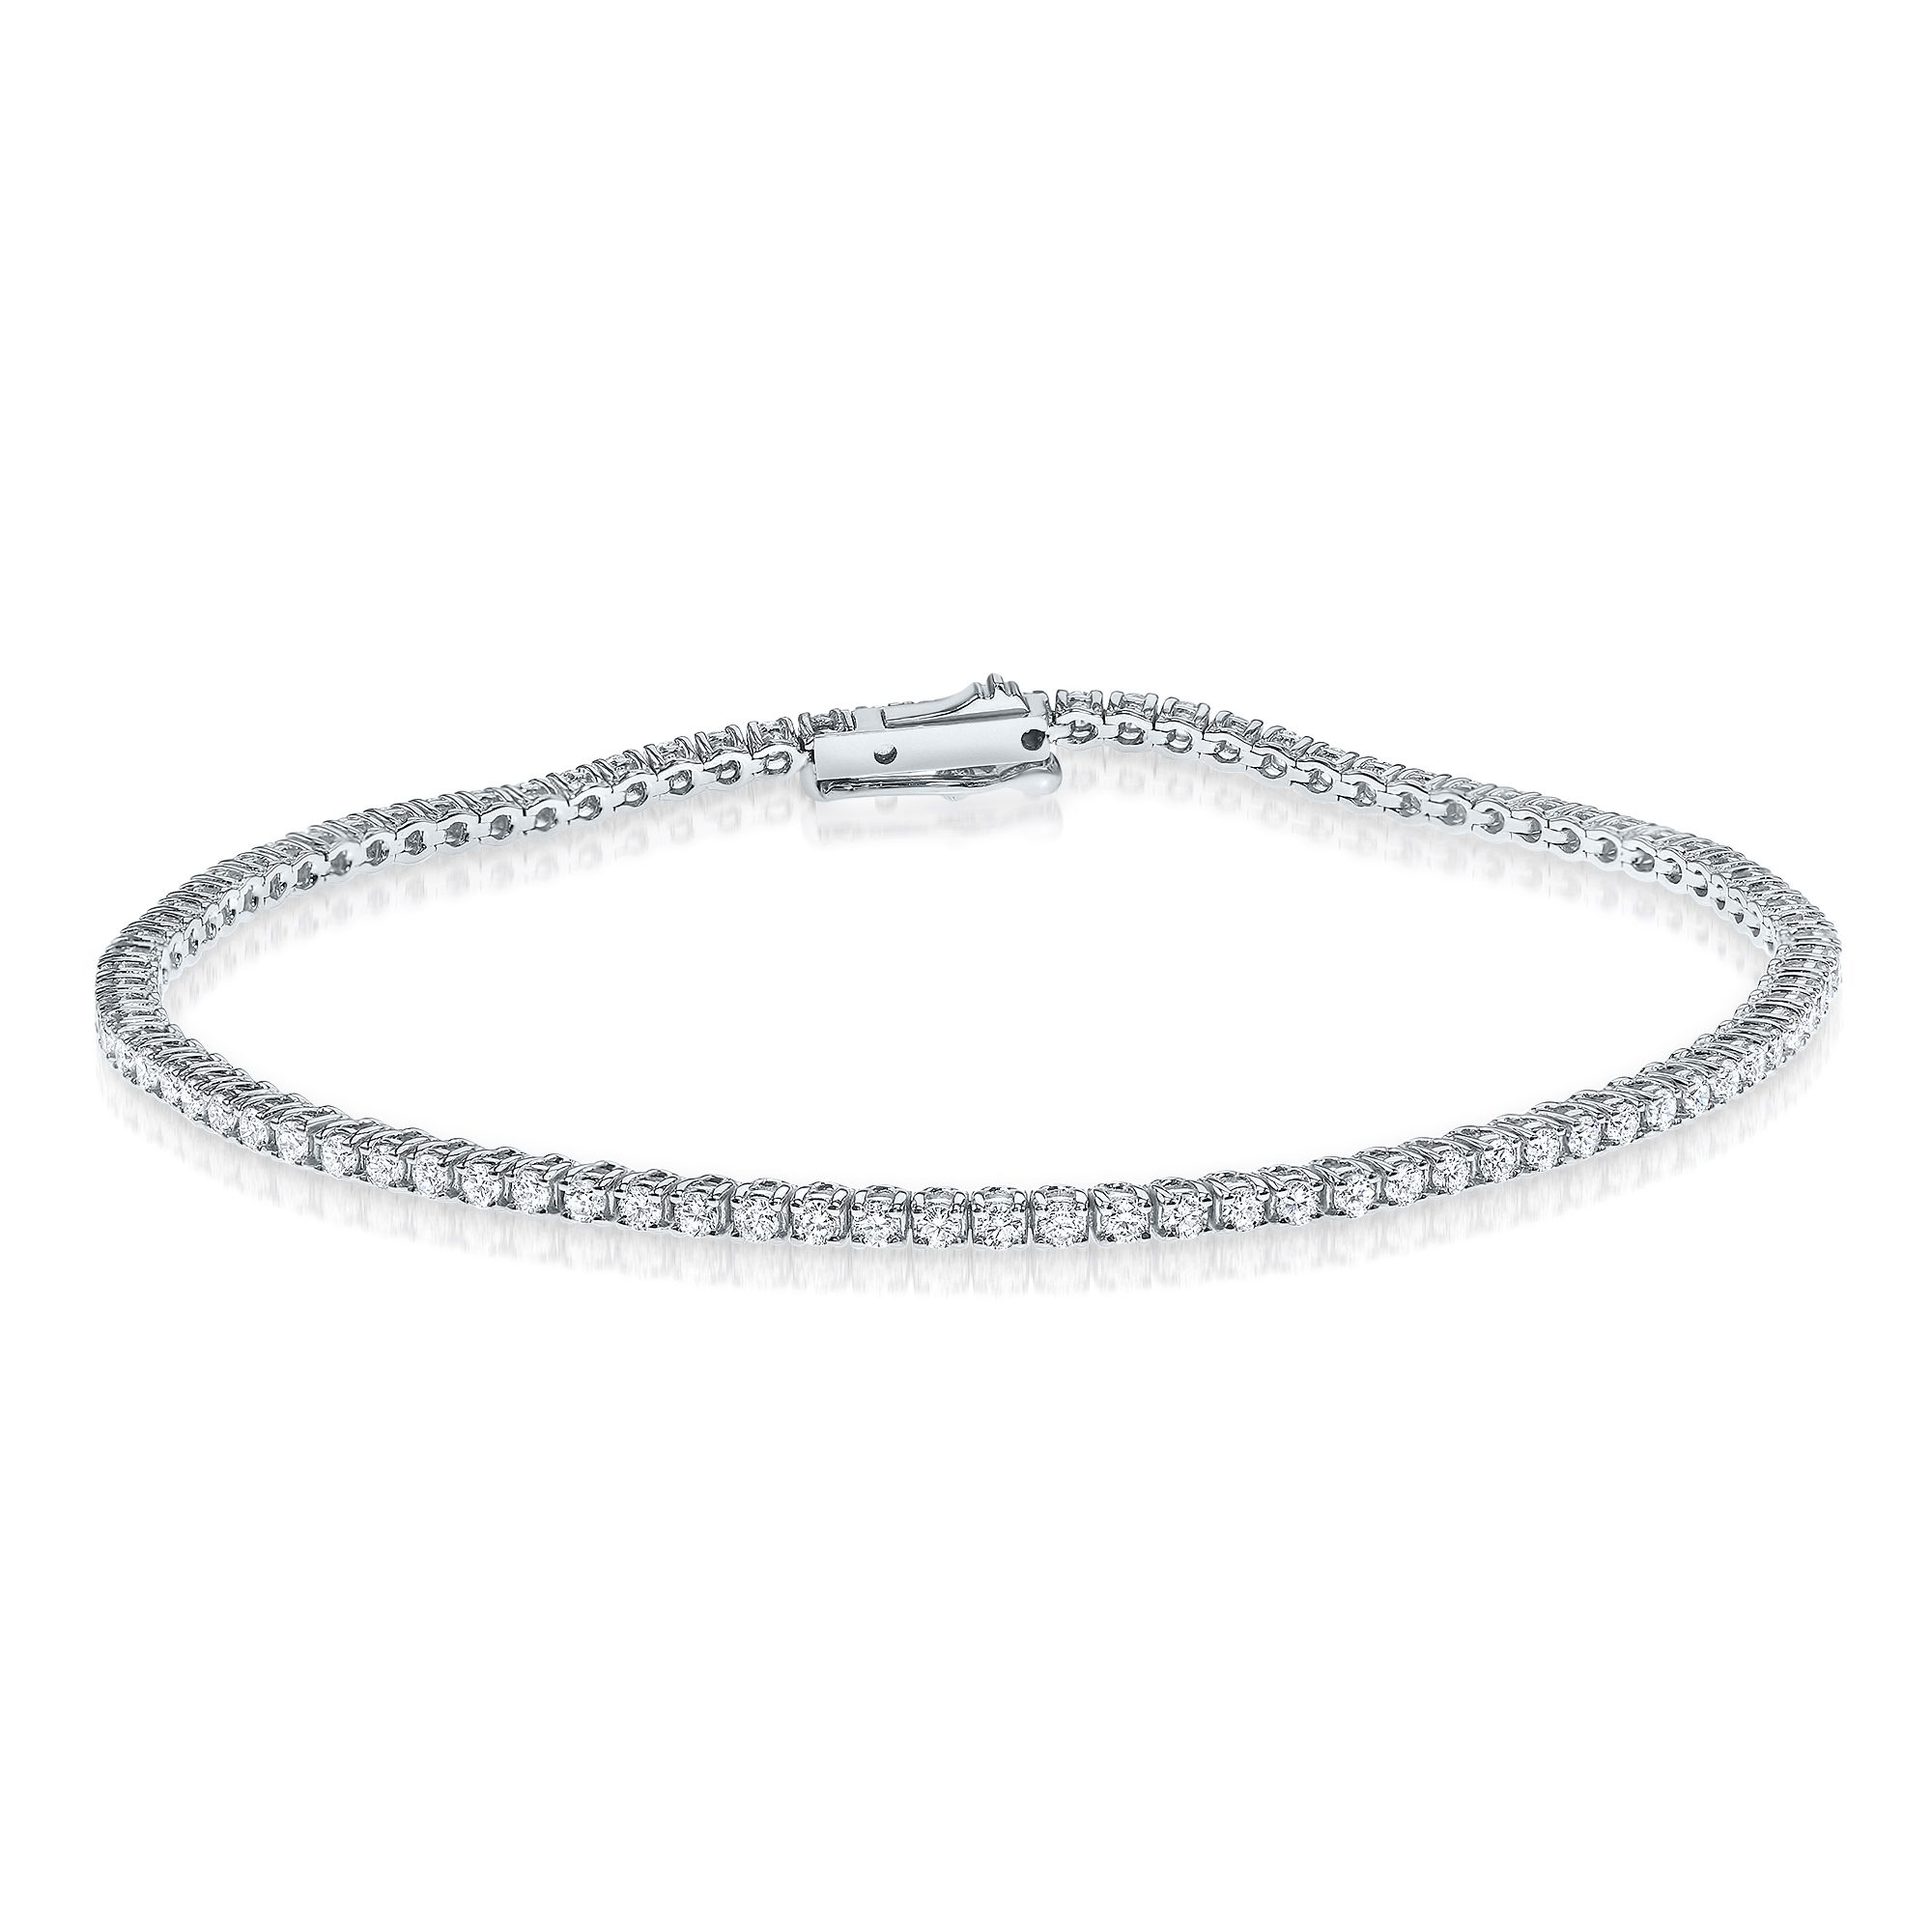 1.50 carat, Tennis Bracelet, G-H Color, I1 Clarity, 14 Gold